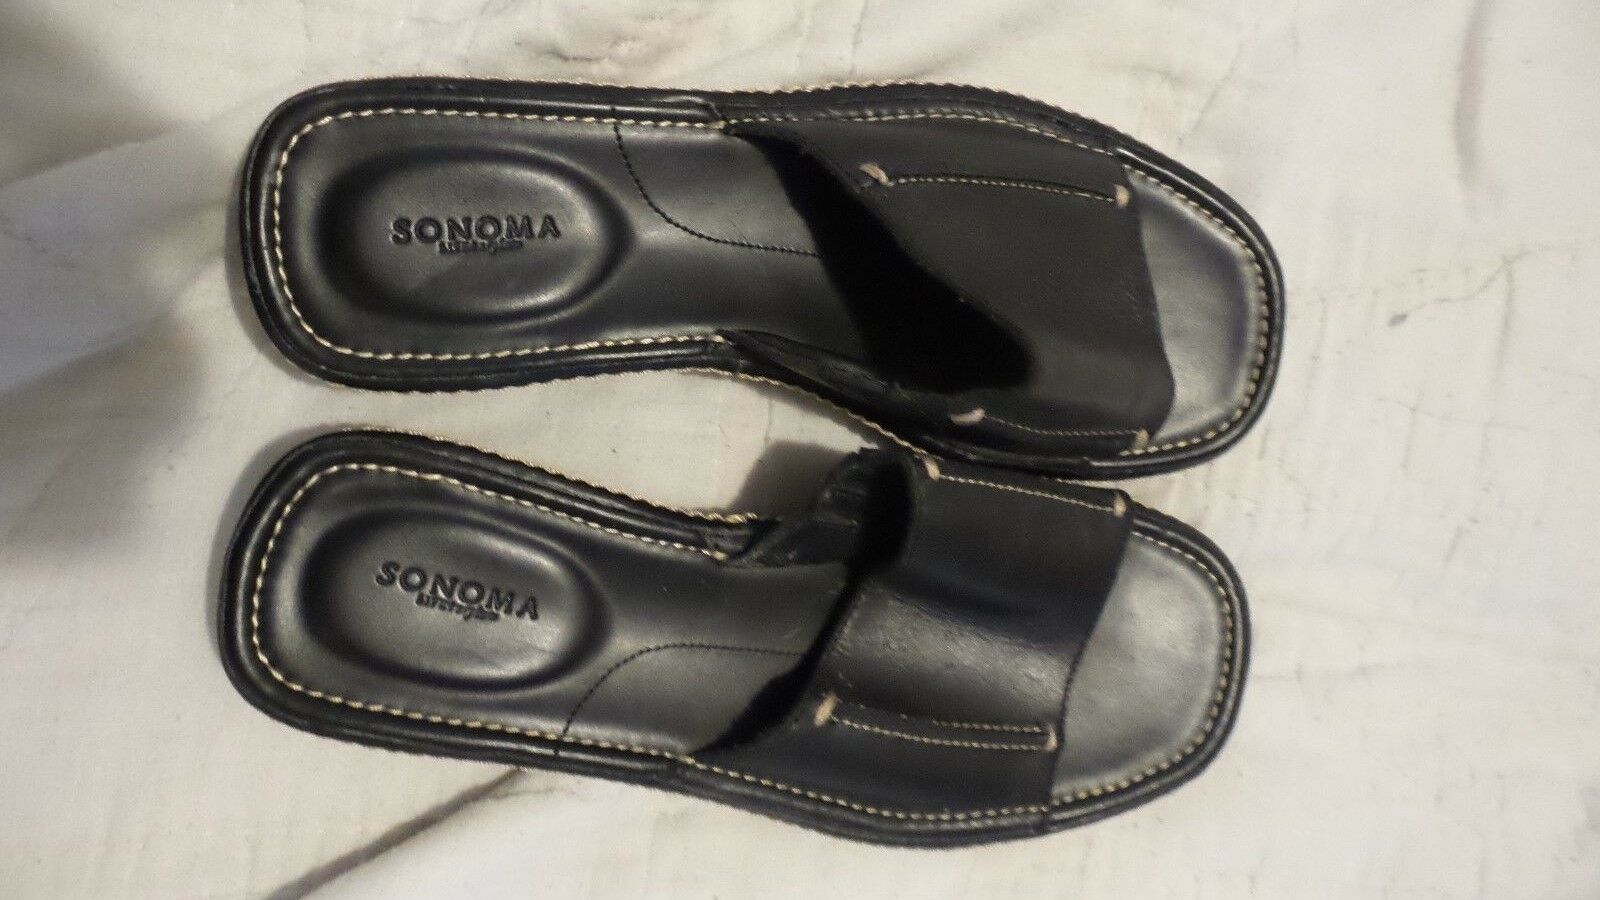 Sonoma Slip on Stitched Sandal Black Stap Top Stitched on Leather Size 8 a36537